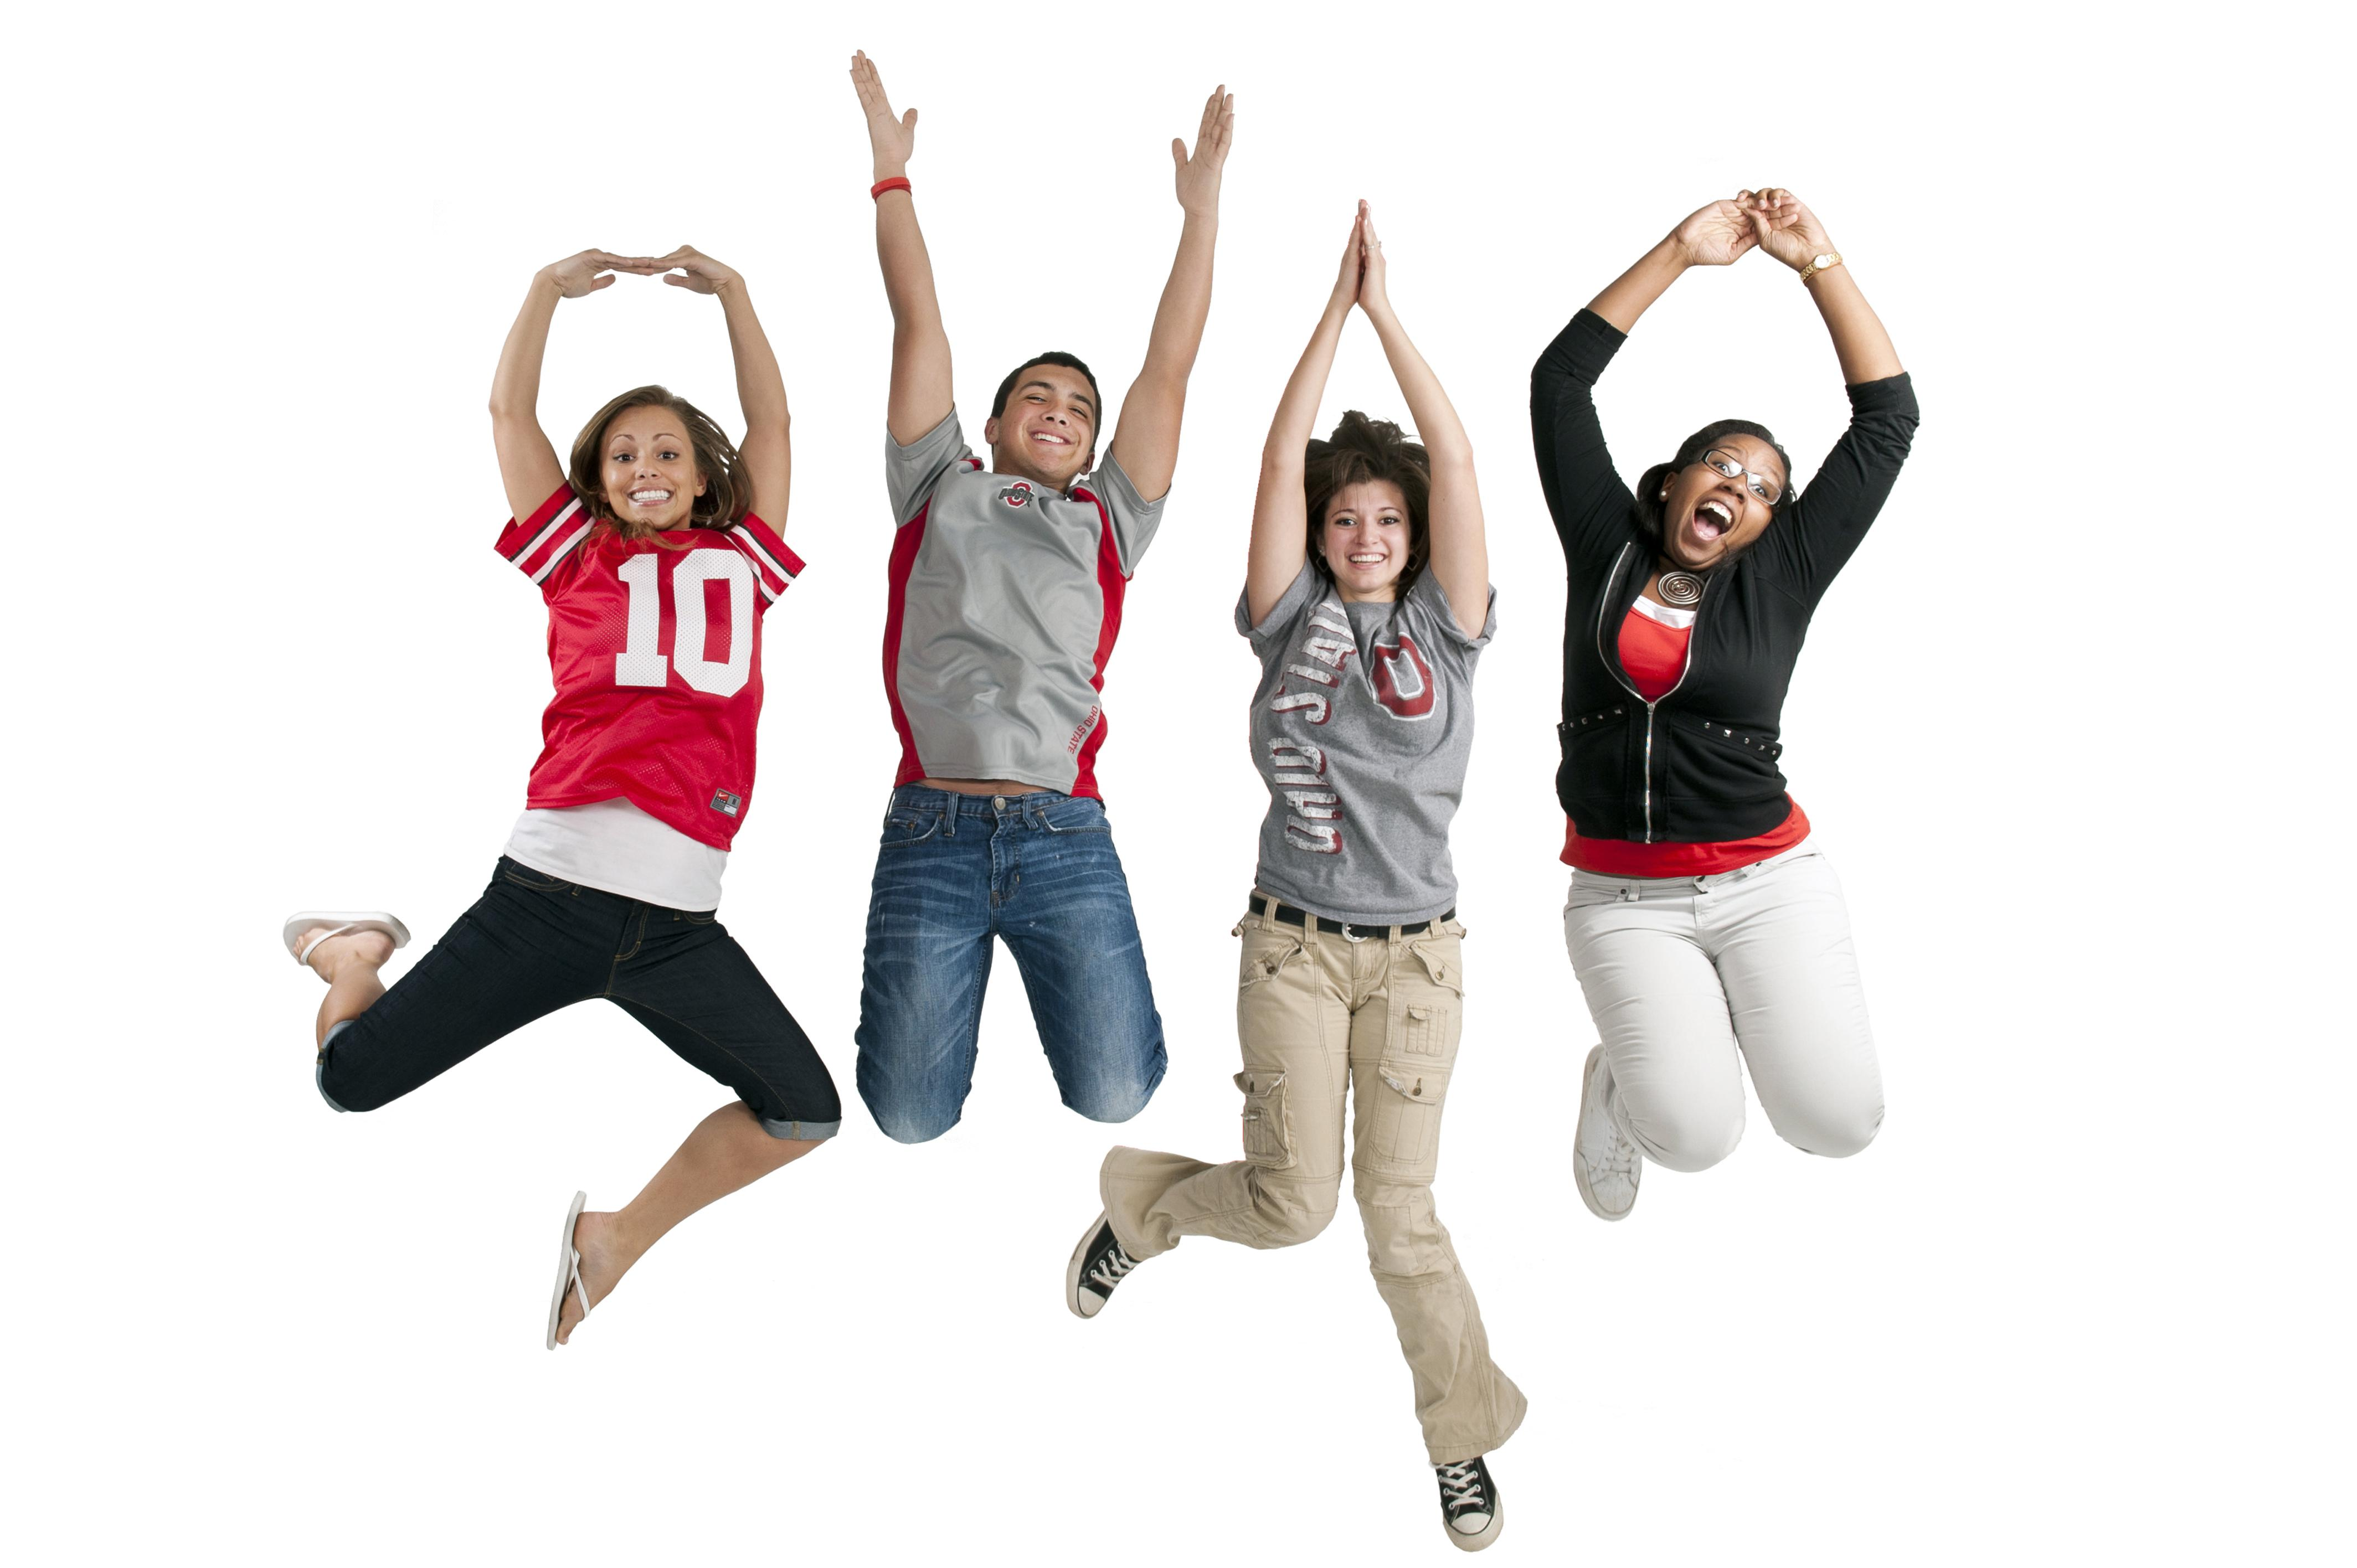 Students spell out O-H-I-O while jumping into the air